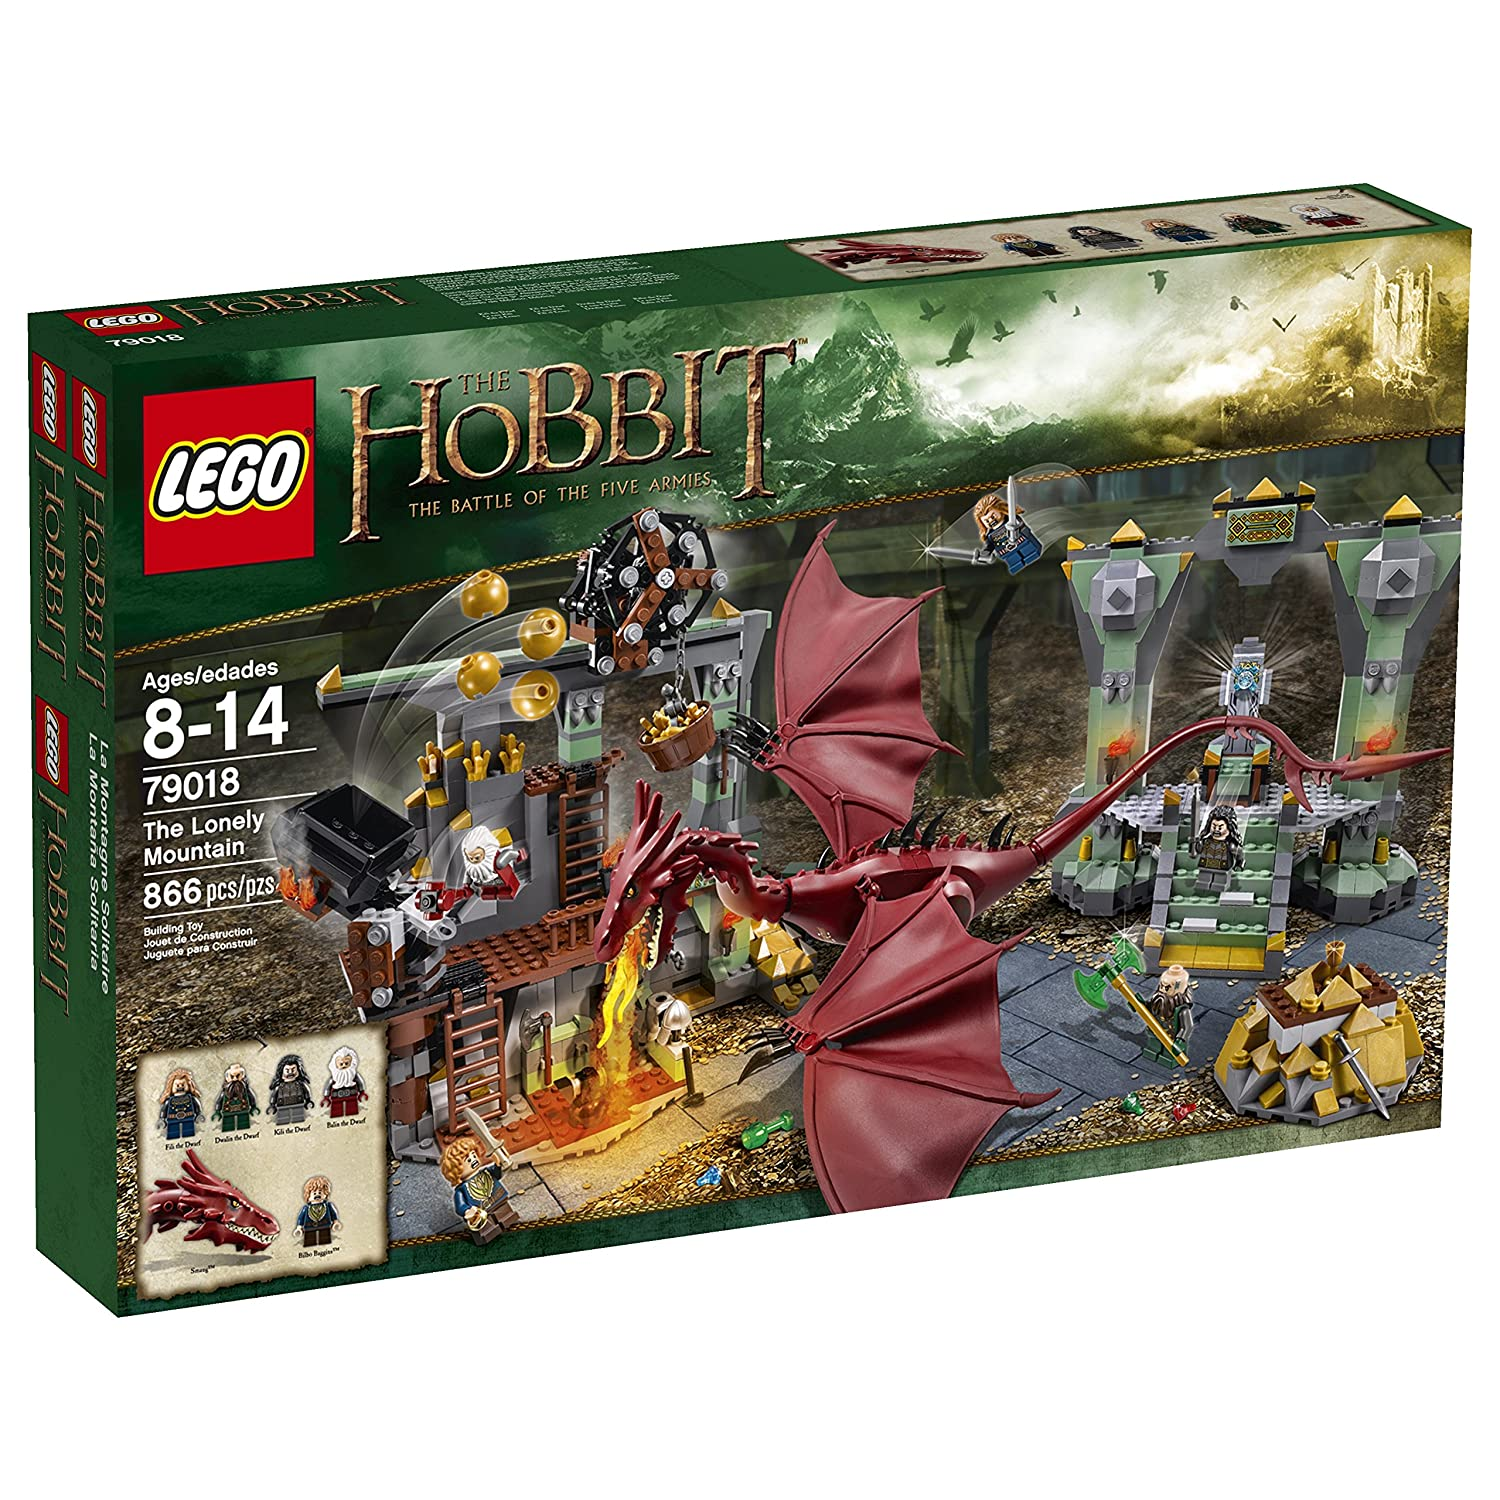 LEGO Hobbit 79018 The Lonely Mountain Discontinued by manufacturer